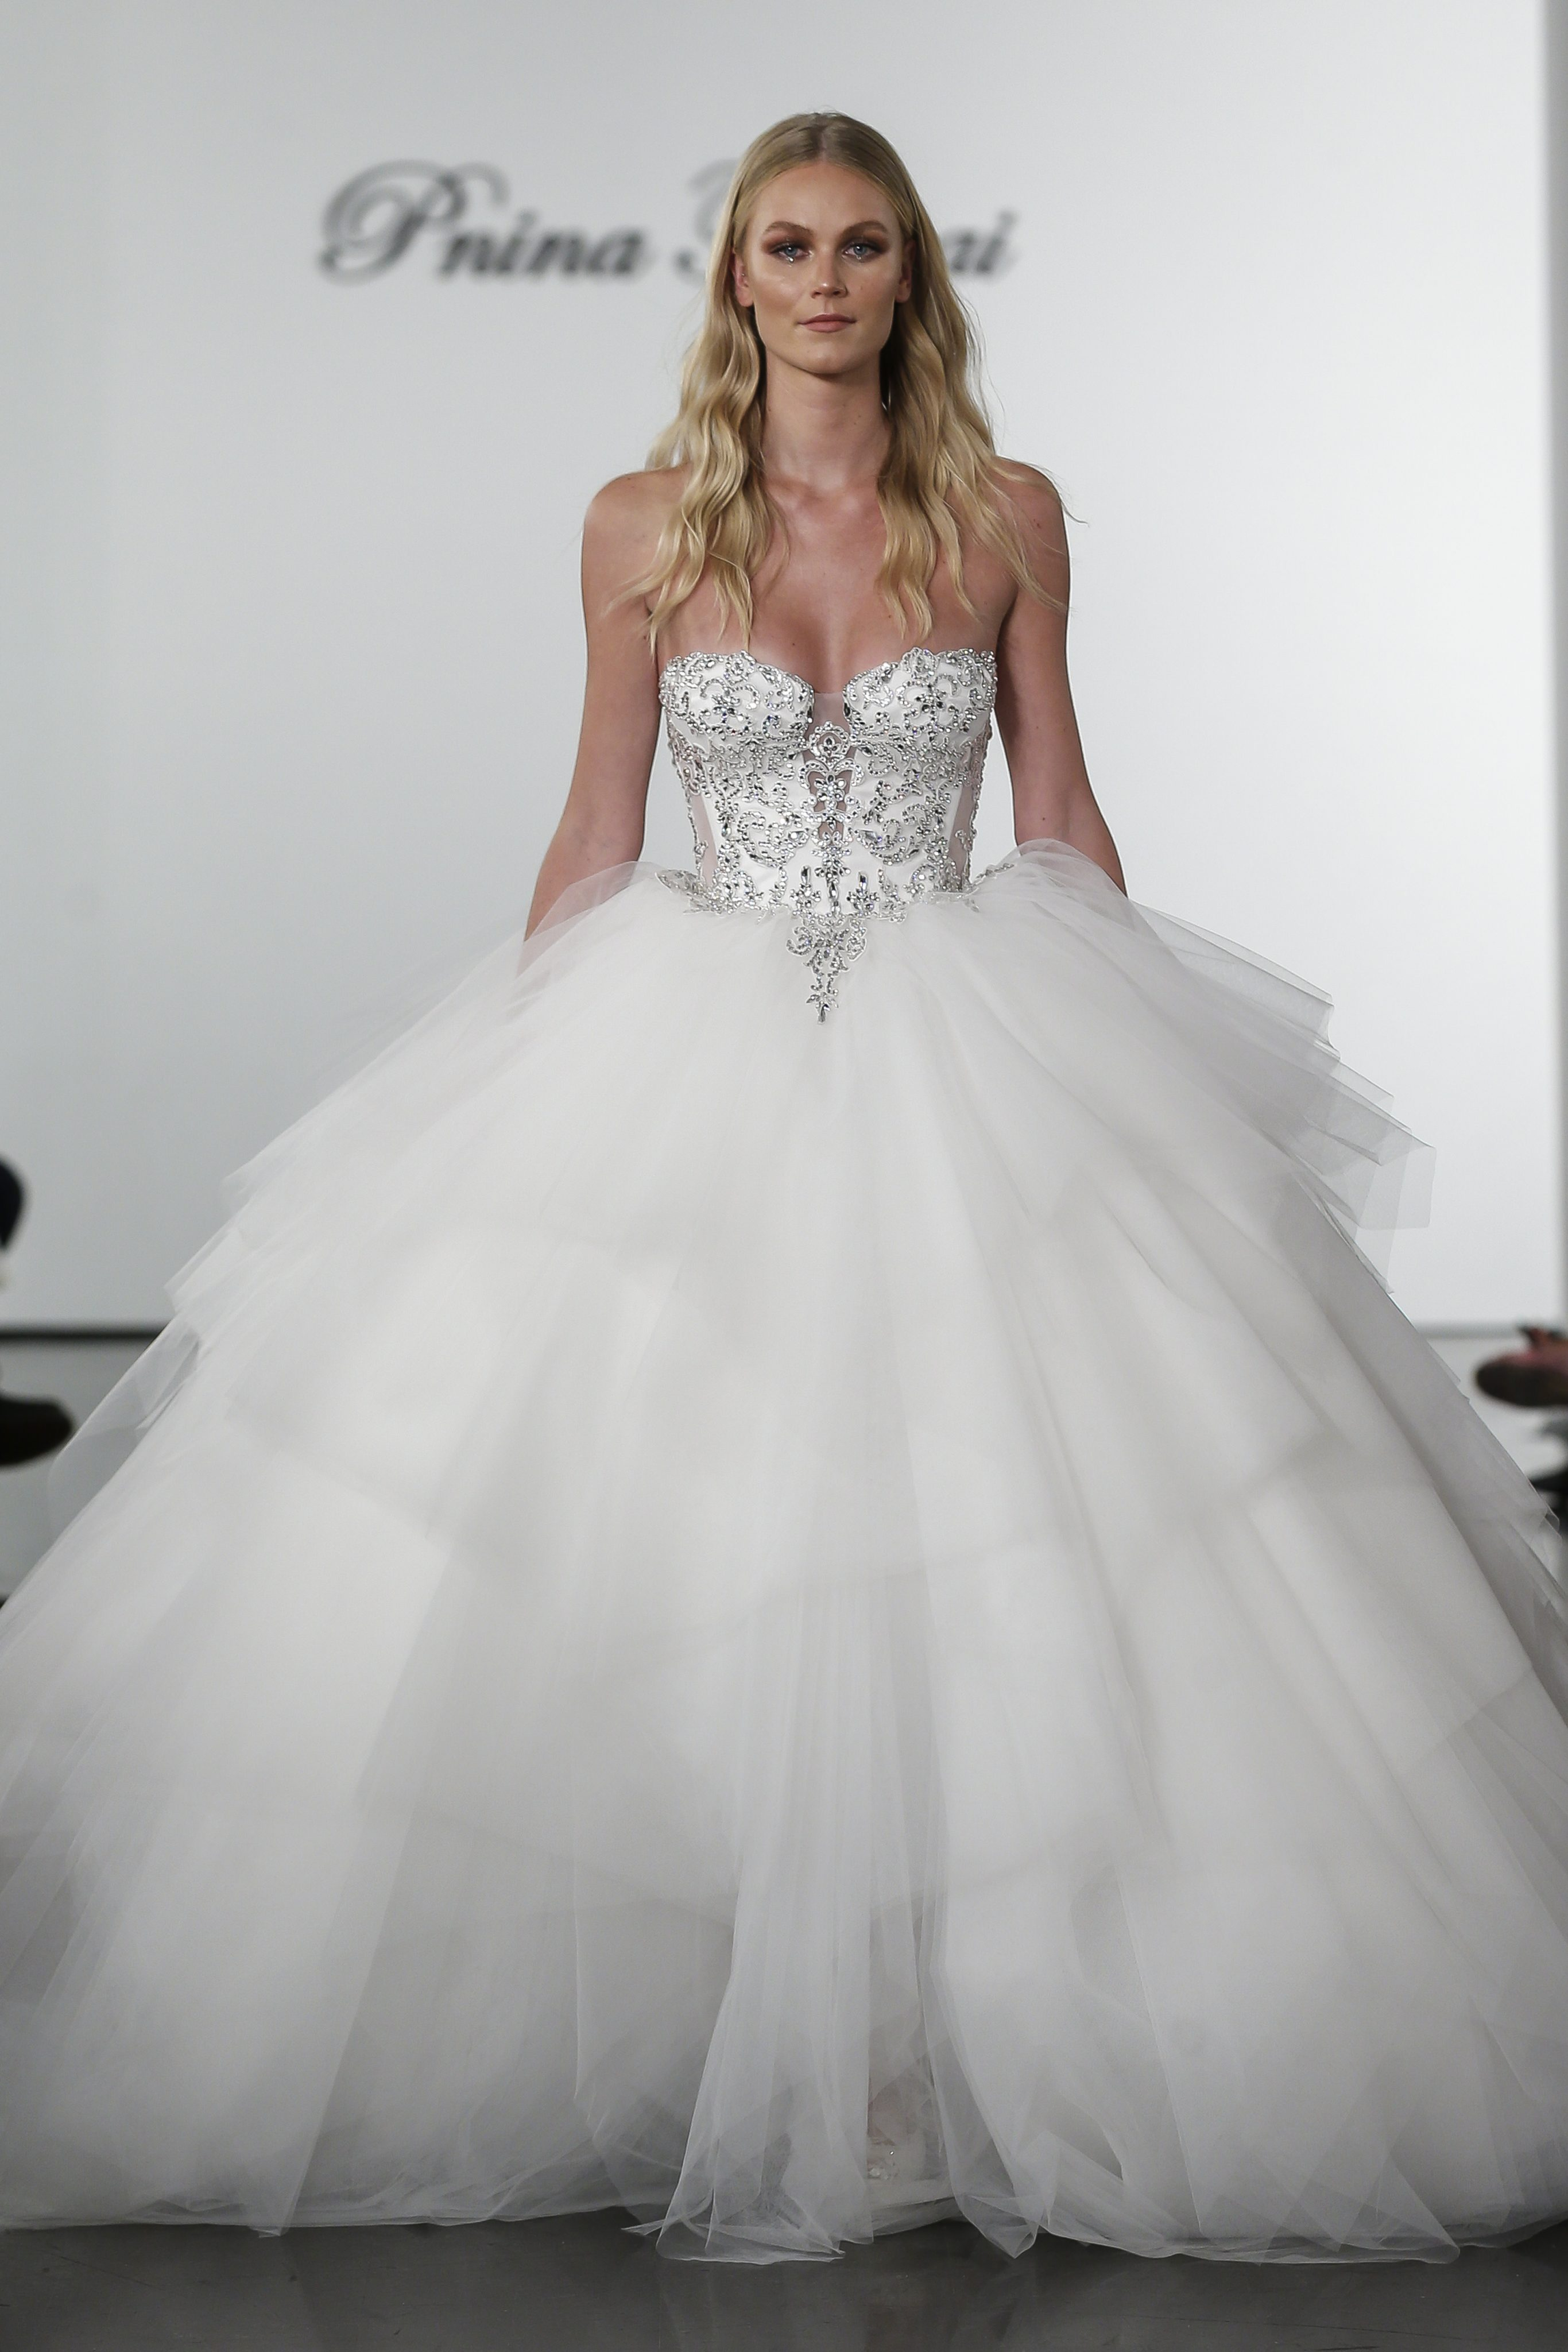 Layered Tulle Ball Gown Wedding Dress With Crystal